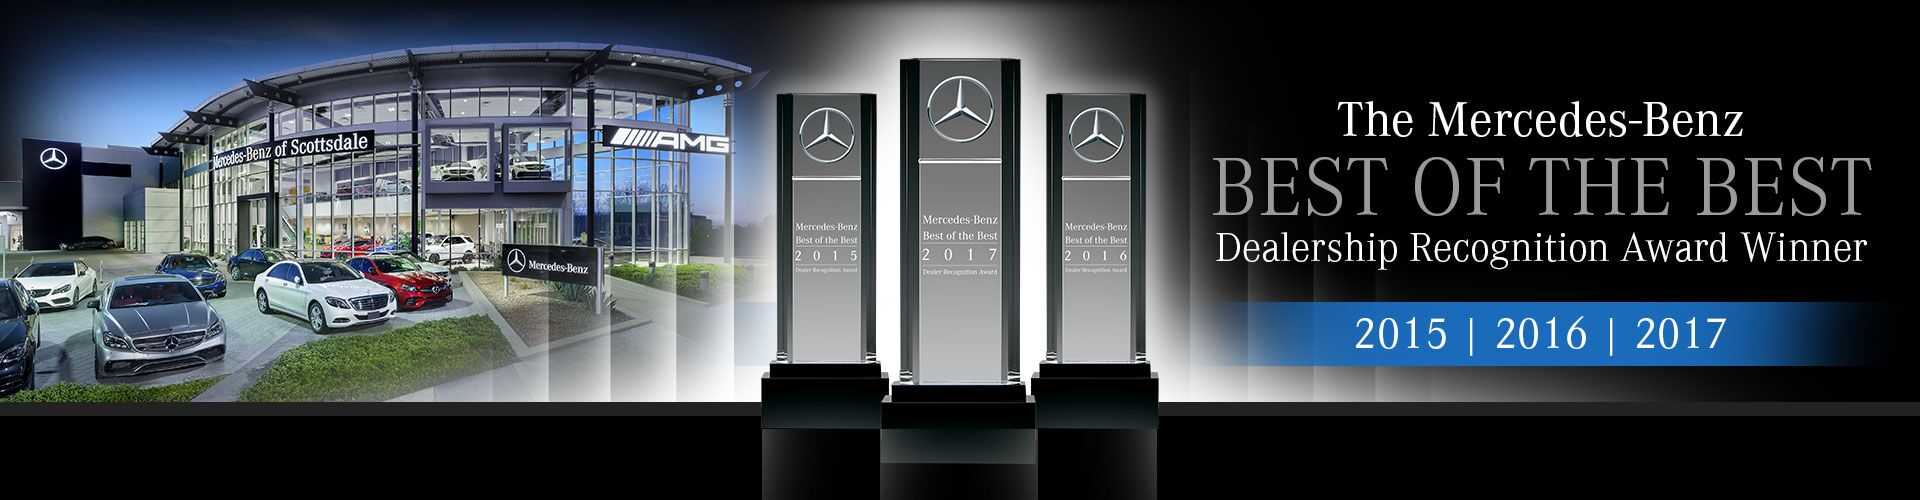 2015 | 2016 | 2017 Mercedes-Benz Best of the Best Dealership Award Winner